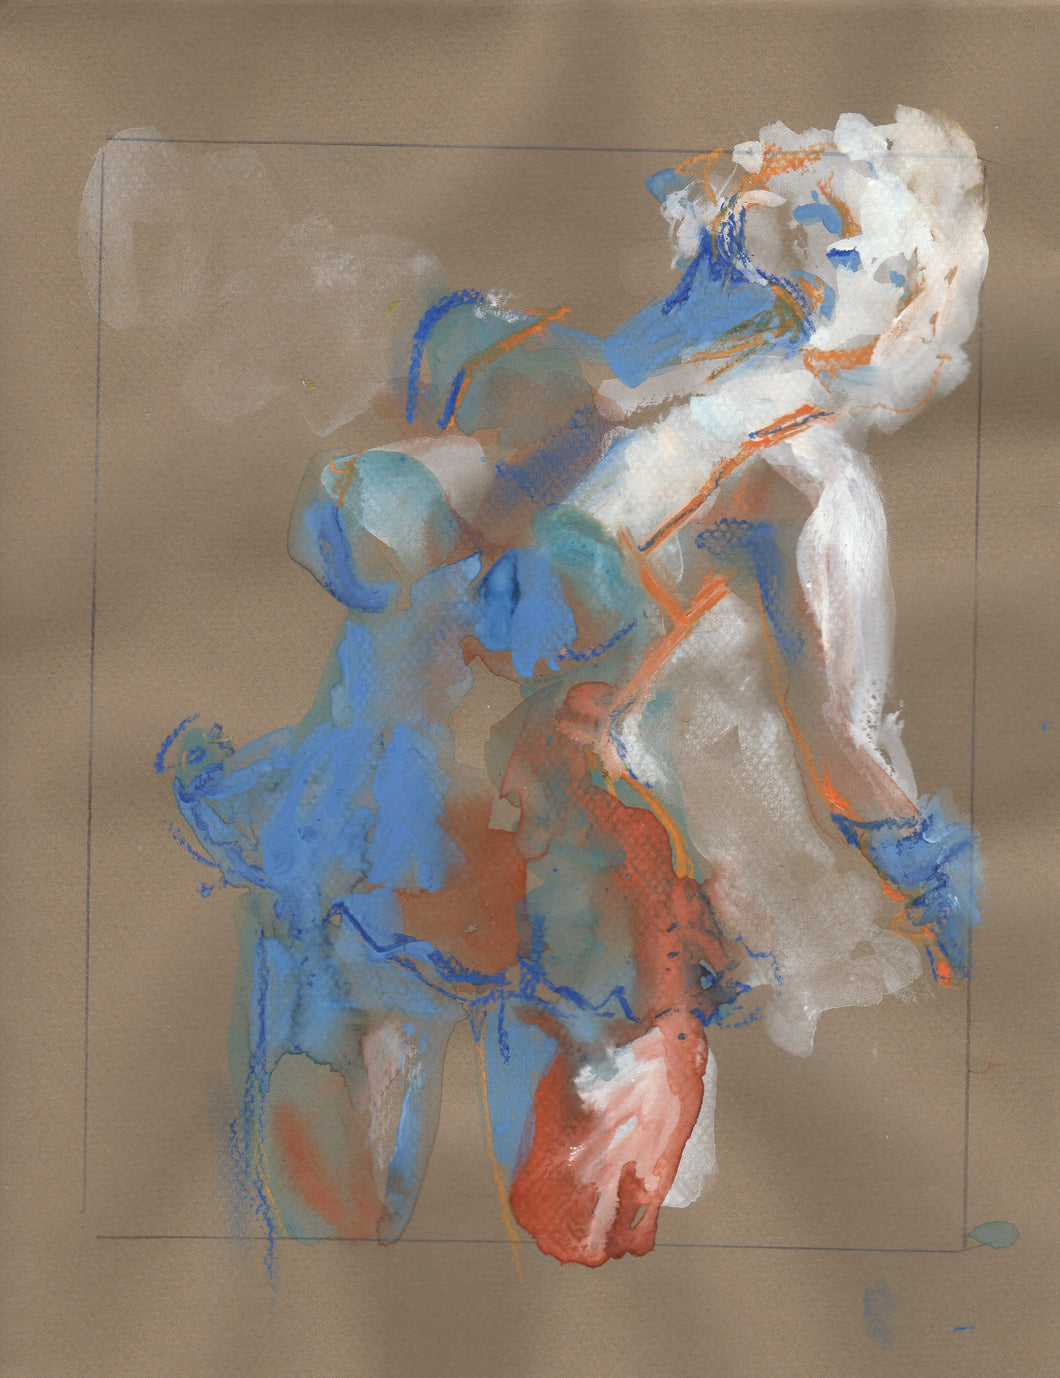 Dancing woman on pastel paper, painted in white, blue and orange.